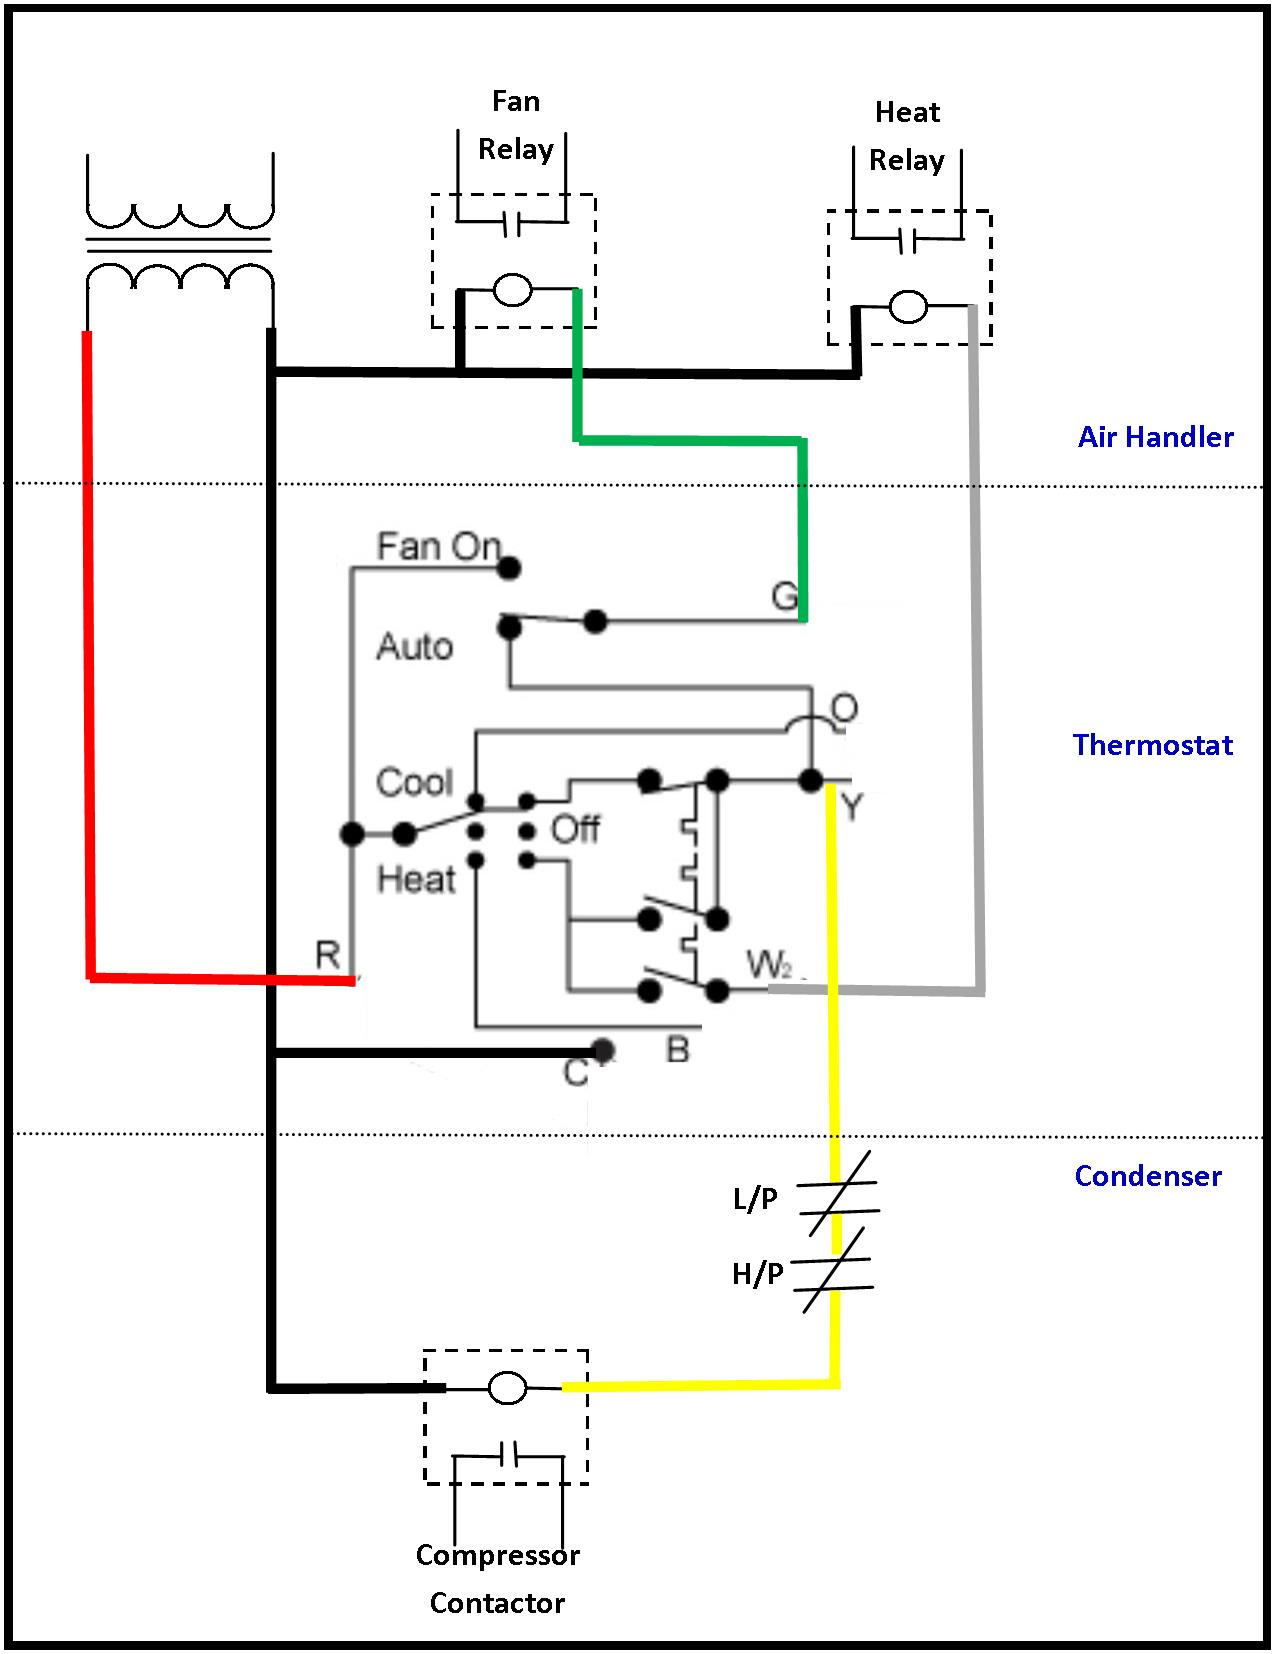 AC low voltage wiring diagram1 hvac relay wiring diagram hvac relay circuit \u2022 free wiring 87A Relay Wiring Diagram at soozxer.org